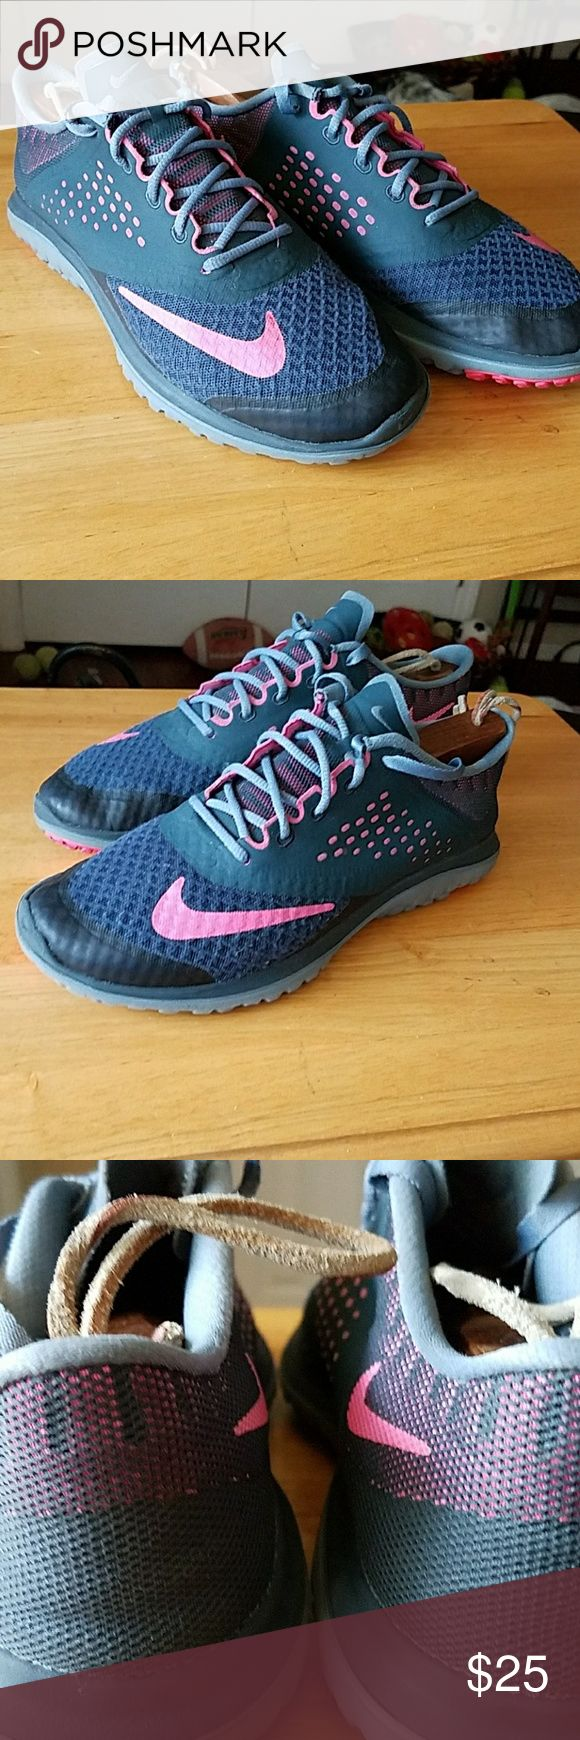 Nike FS lite run ladies trainers size 7.5 Ladies Nike Trainers in size 7.5. These were my daughter's trainers and ha e been worn a handful of times. Still have plenty of life left. Please see the pics. Colors are dark grey and pink. Nike Shoes Athletic Shoes